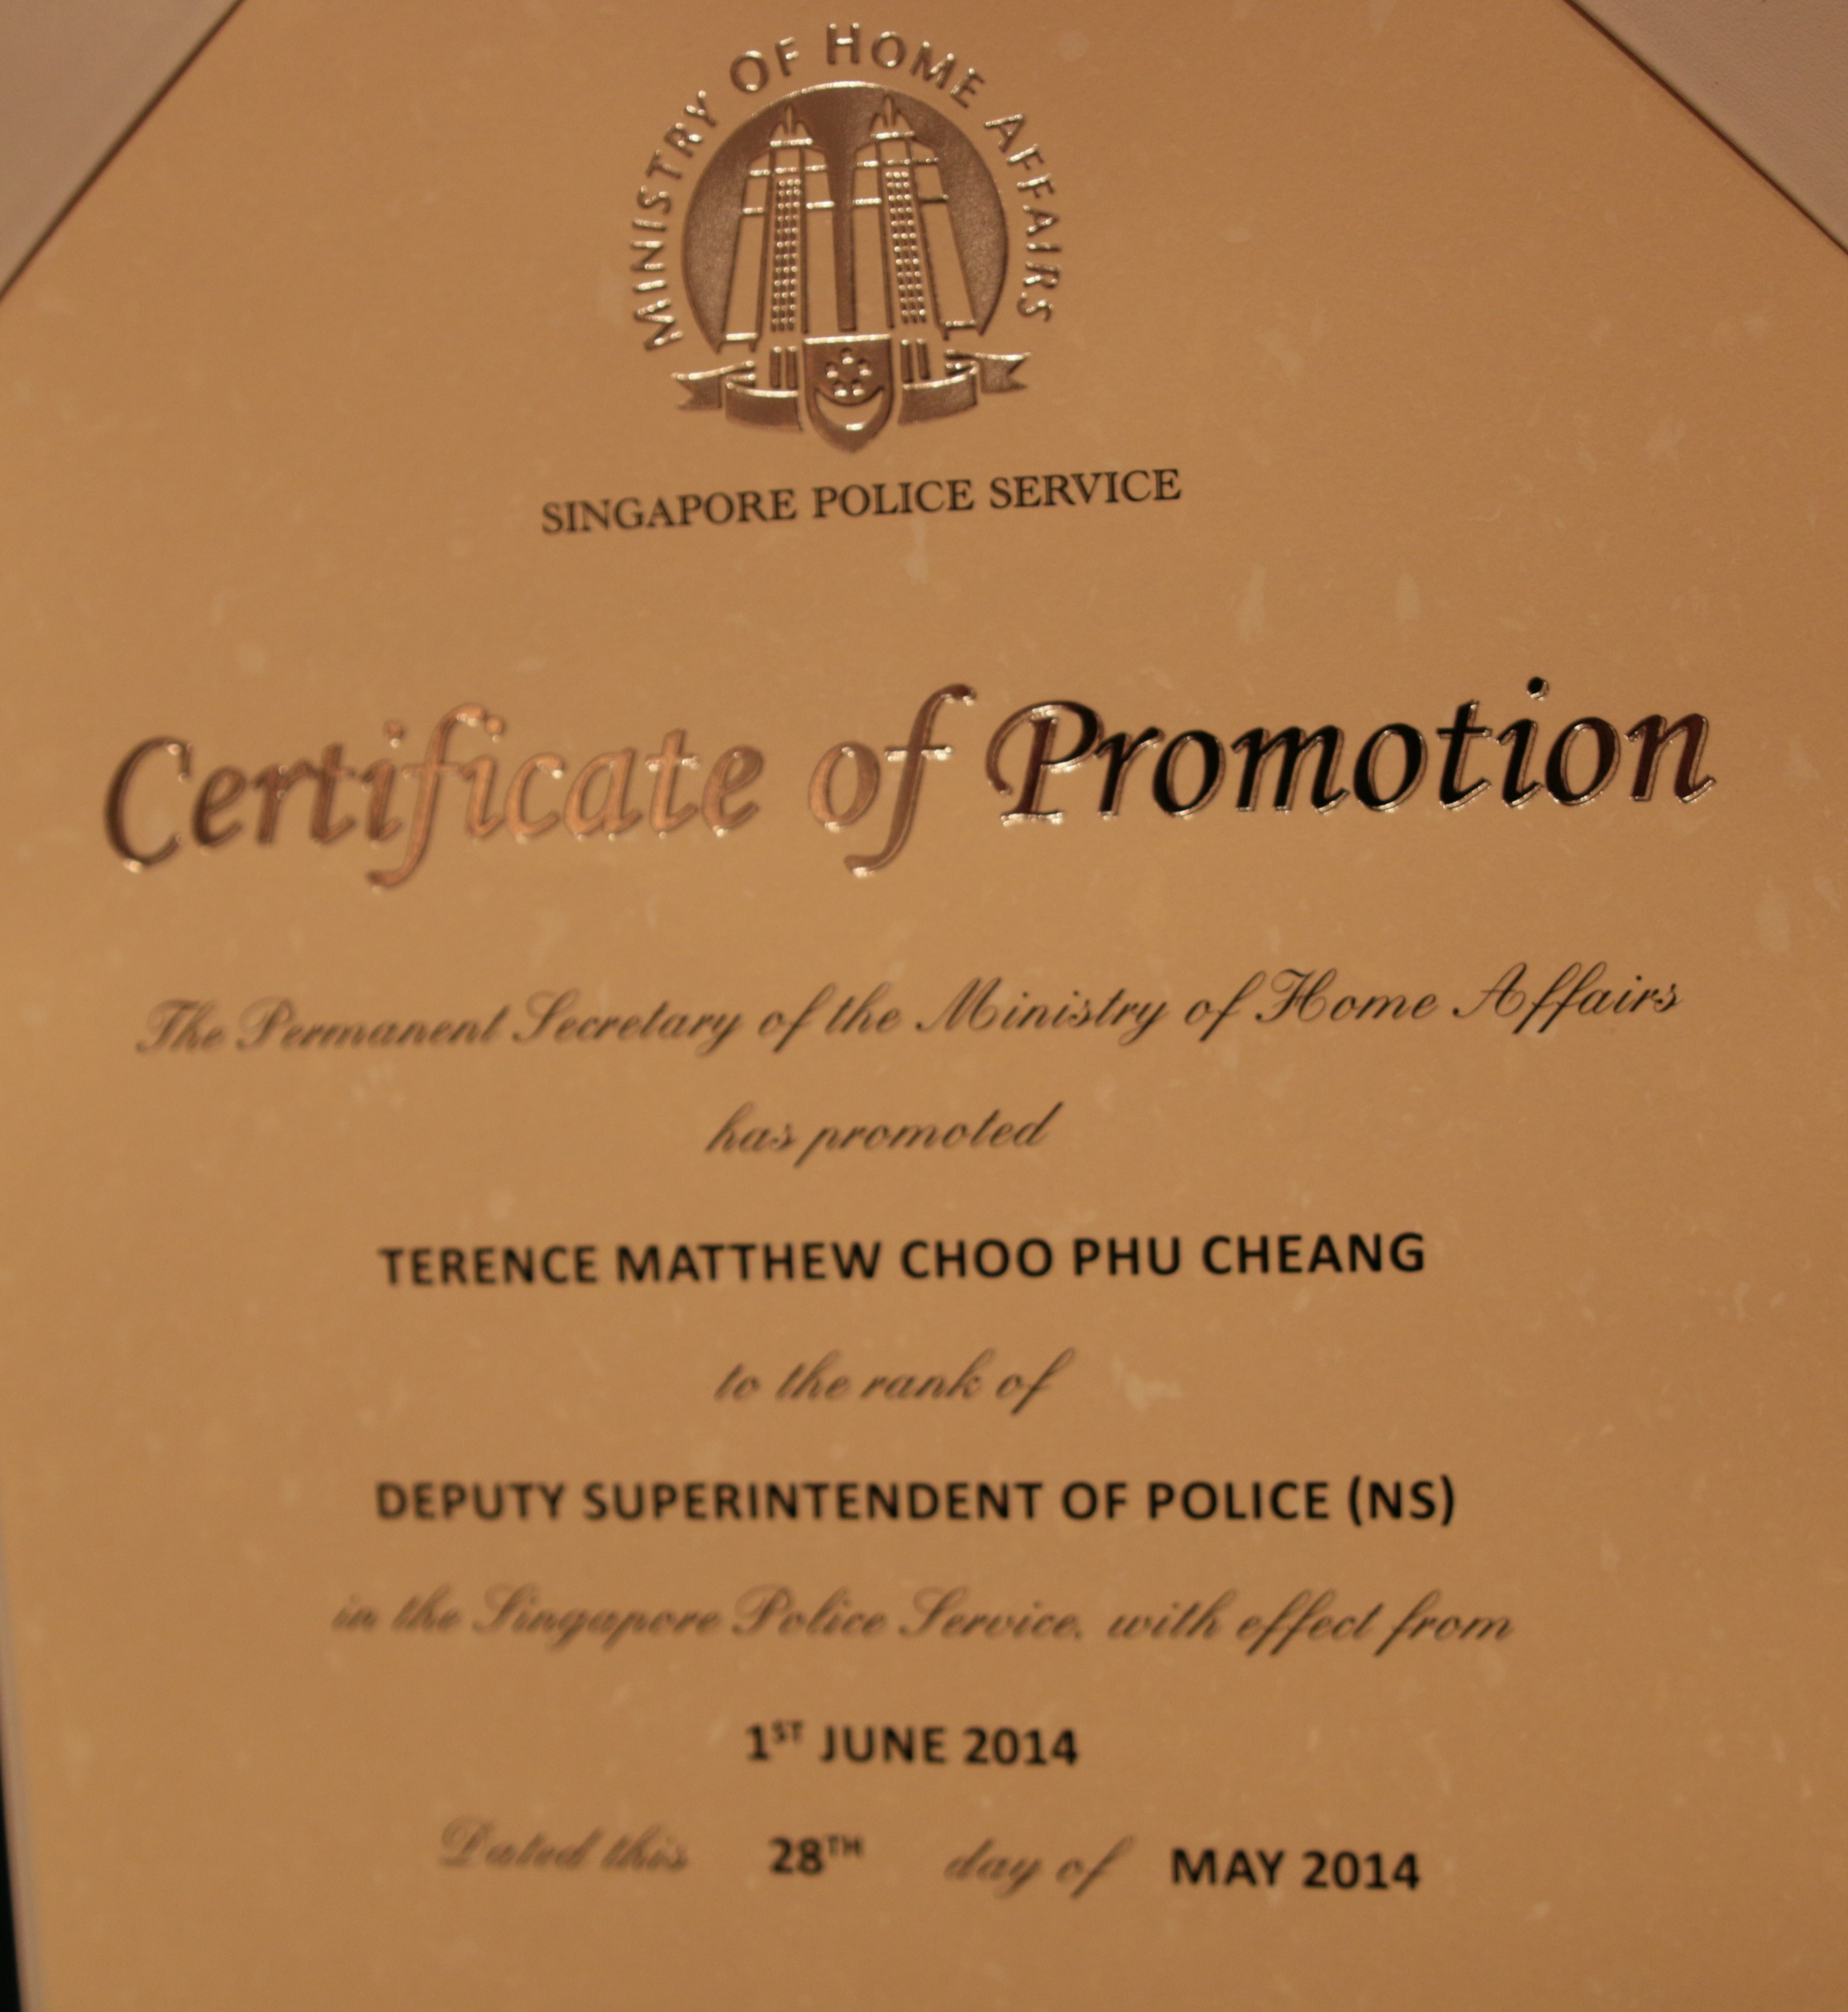 officer promotion certificate template - terence choo imagine you are healthier